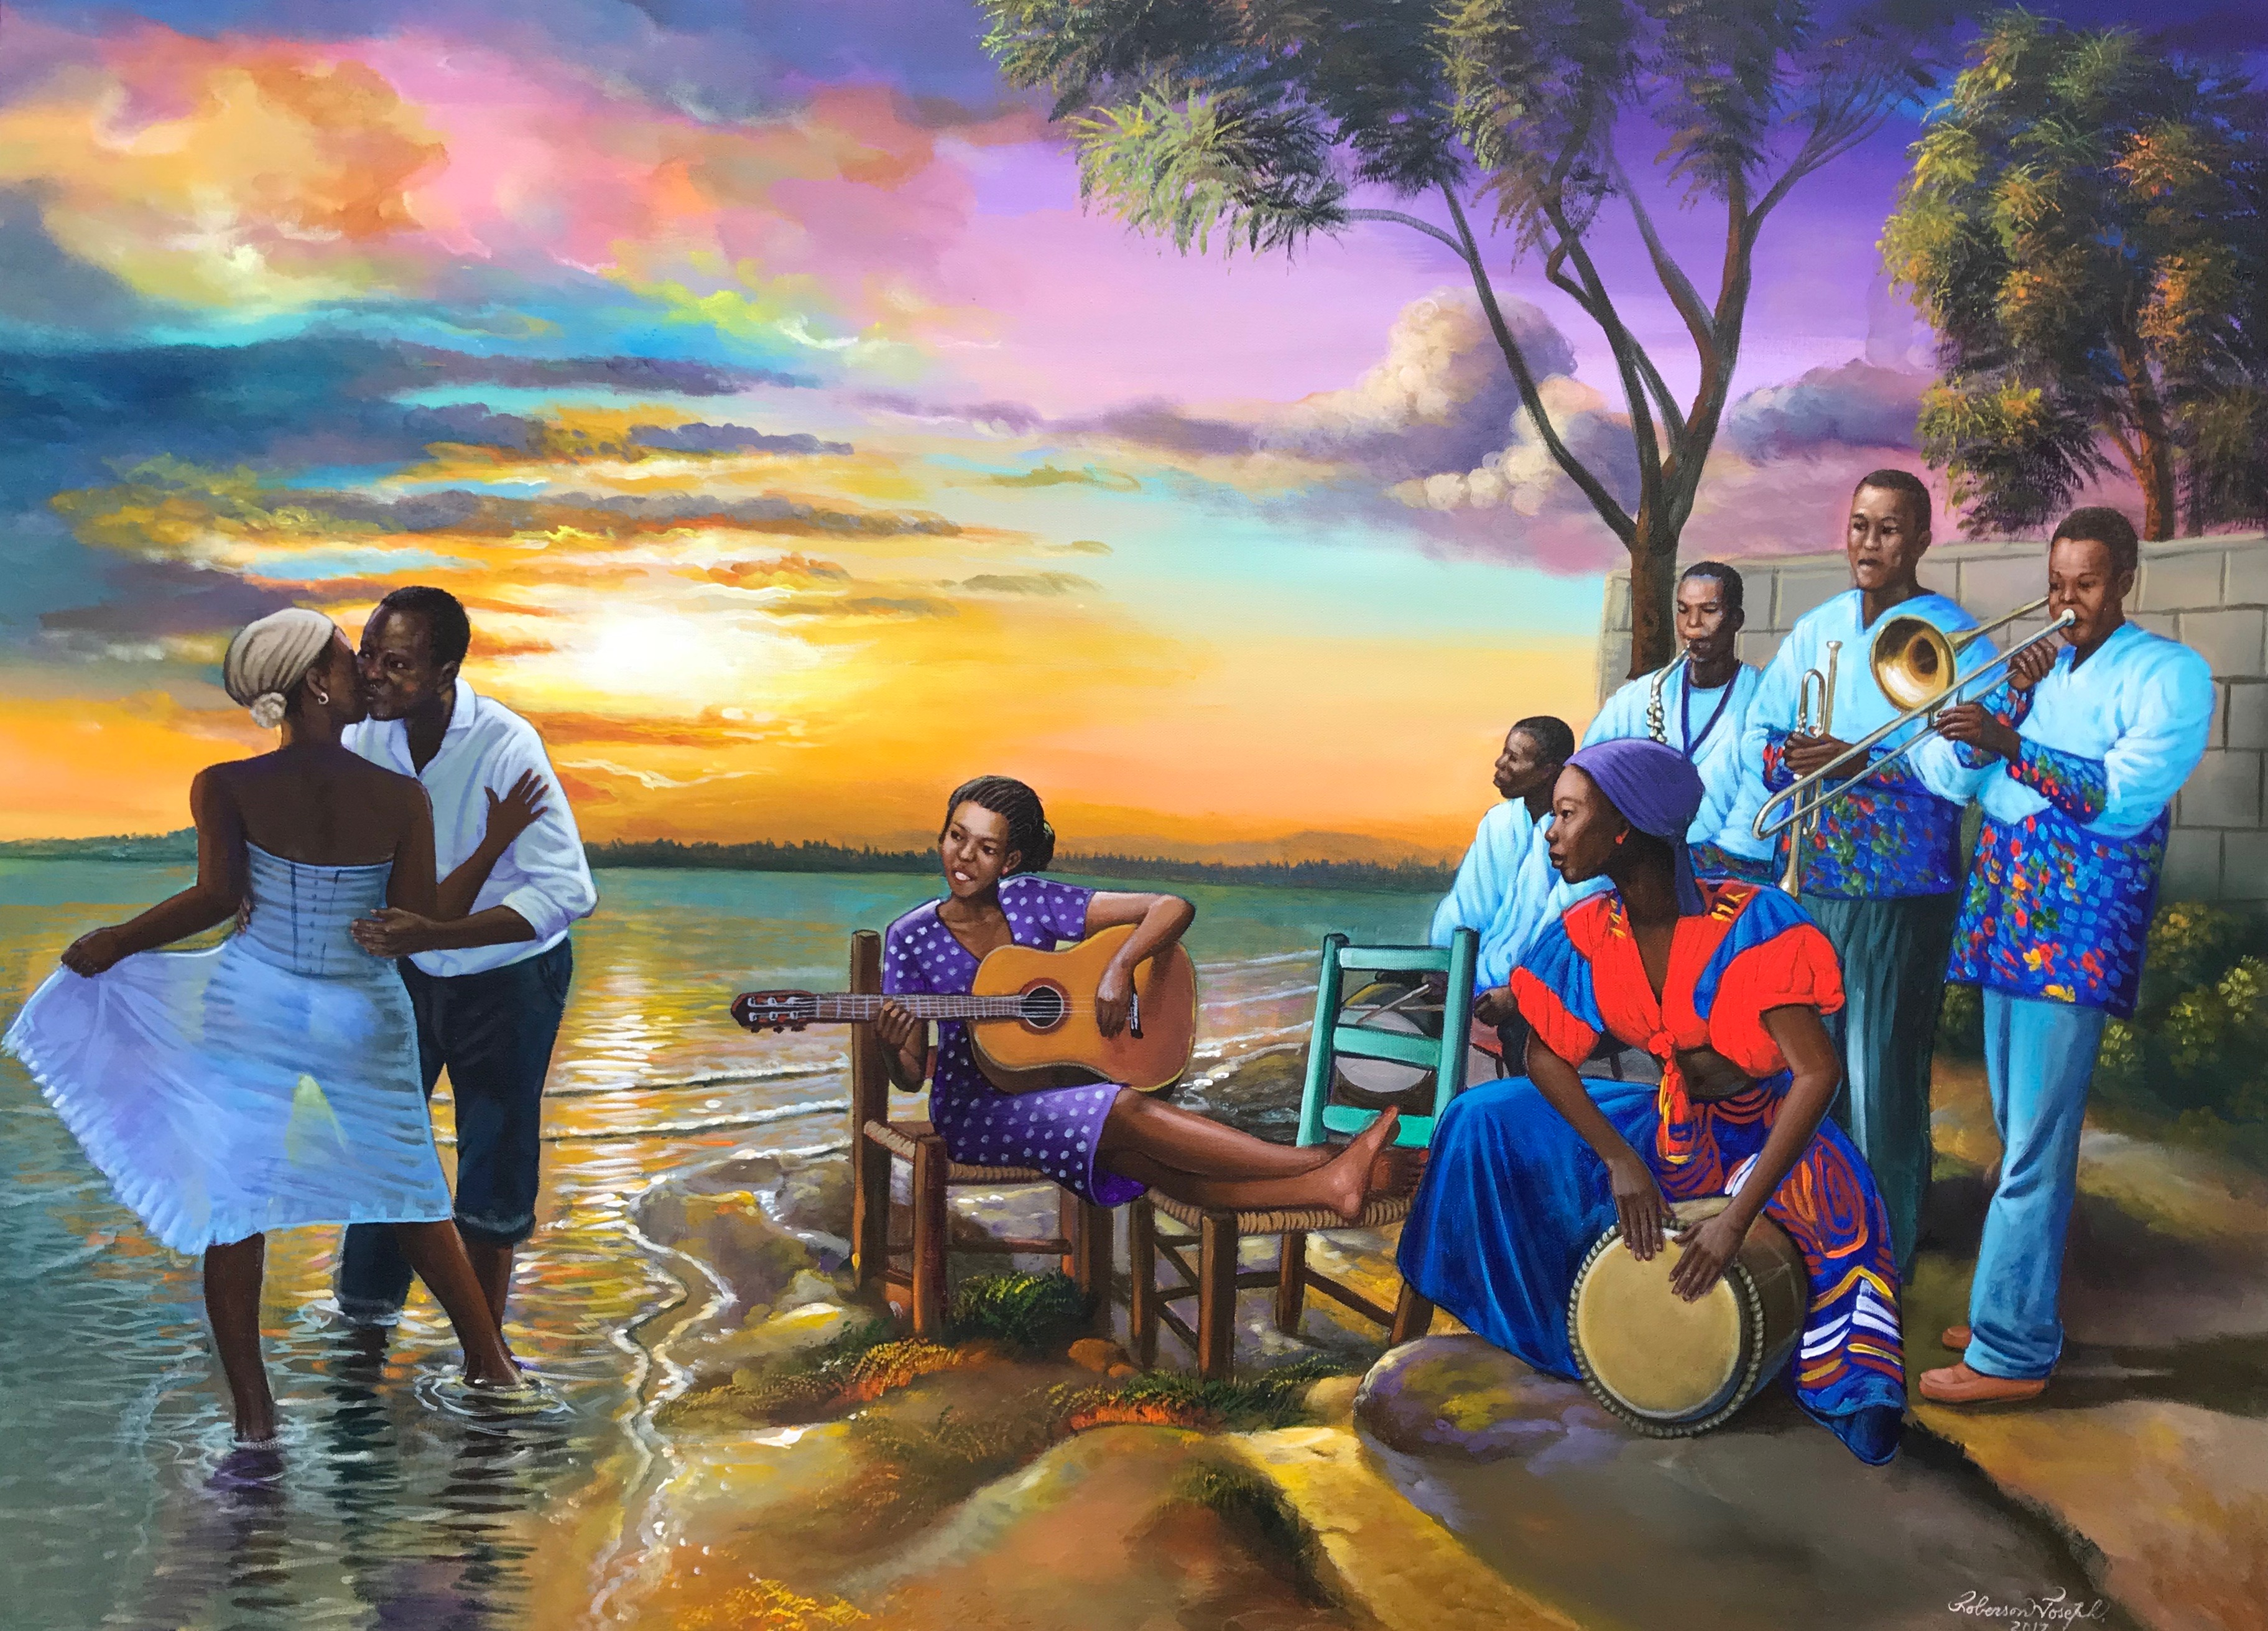 A colorful beach scene painting with people dancing and playing music by Roberson Joseph.